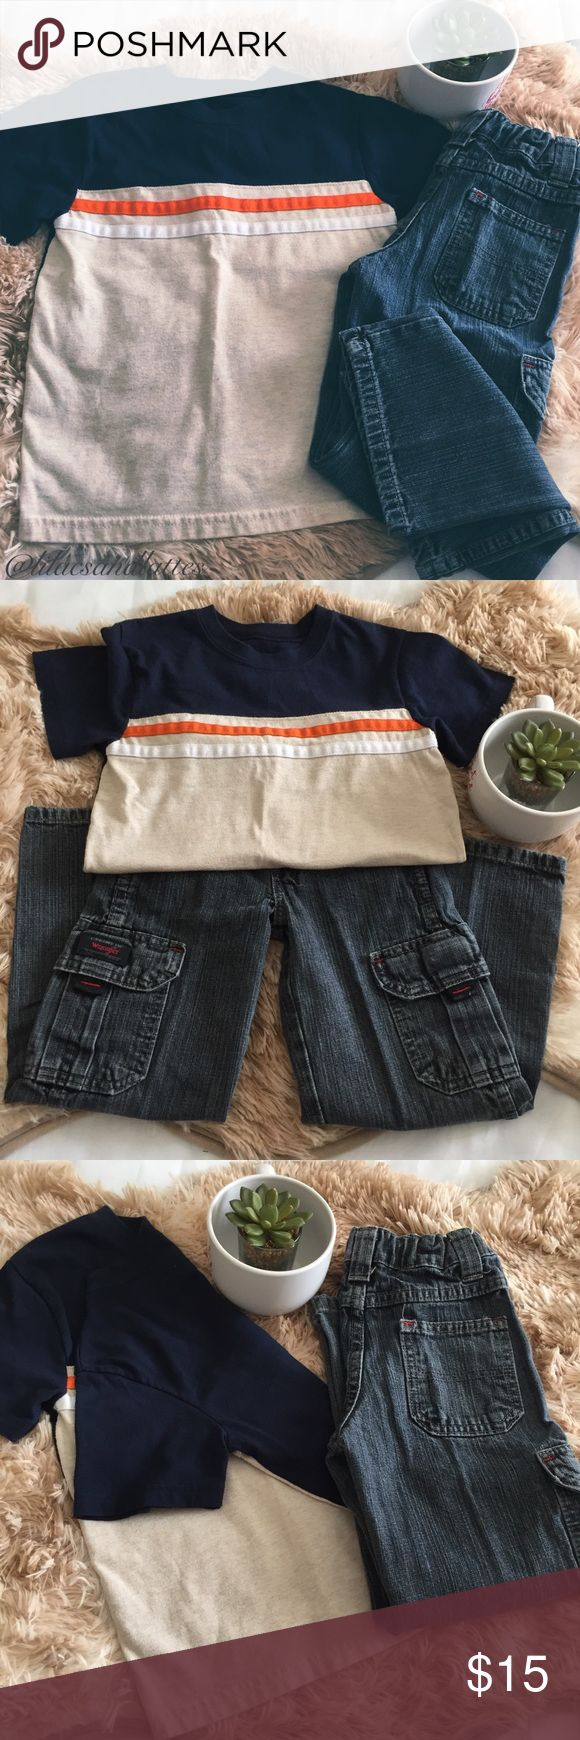 """Boys👦🏼Jeans & Tee Bundle Boys👦🏼Jeans & Tee Bundle in EUC • Both pieces, like new, no flaws • Wrangler Jeans 